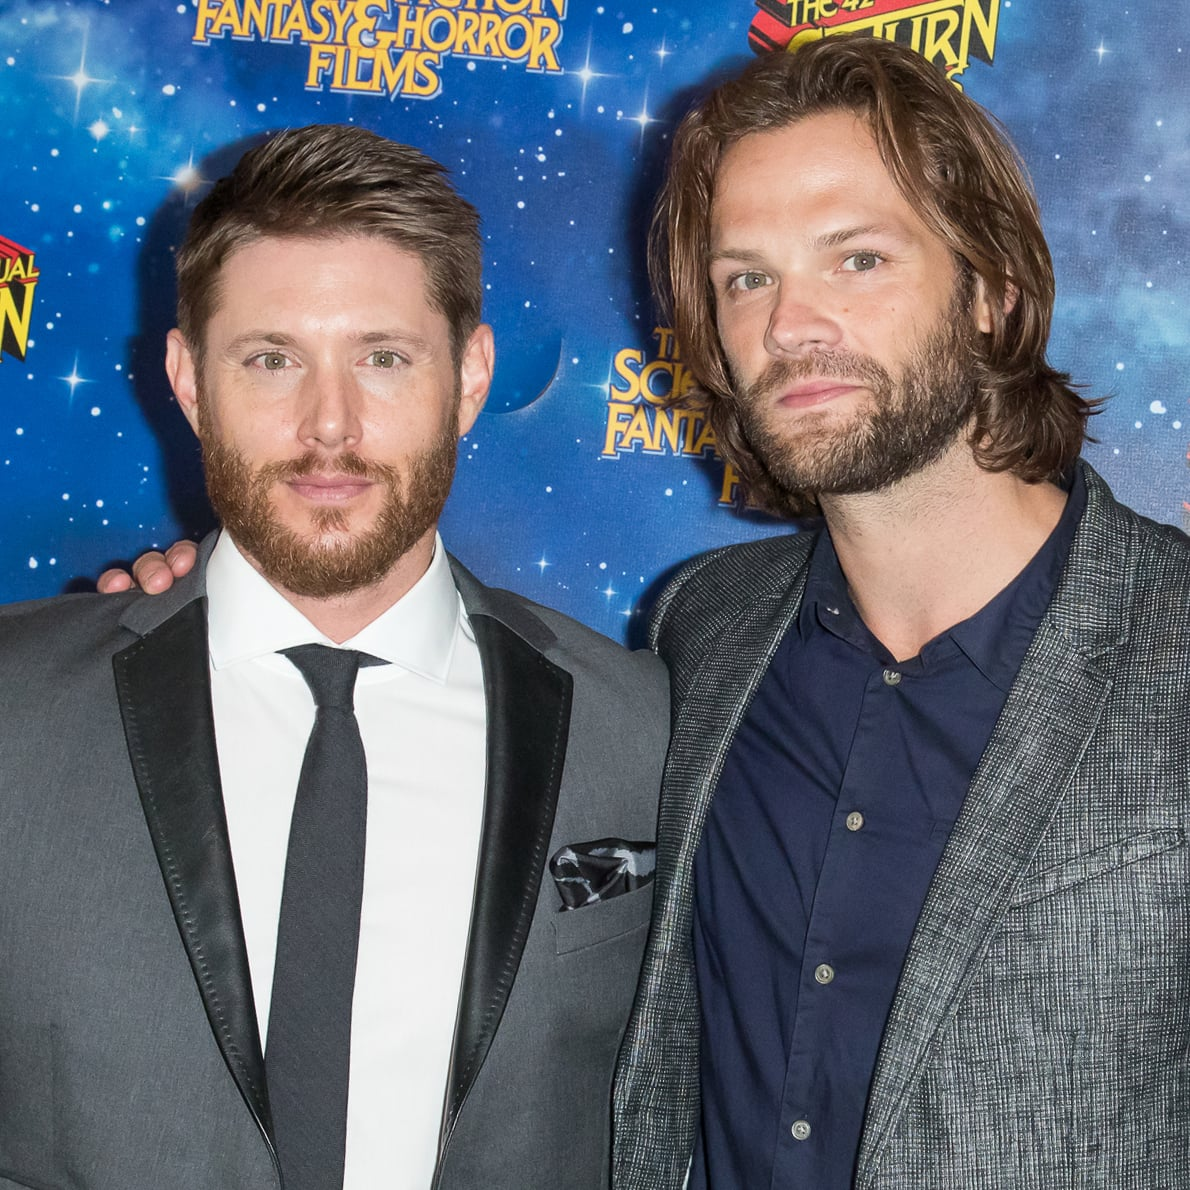 Jensen Ackles And Jared Padaleckis Friendship In Real Life